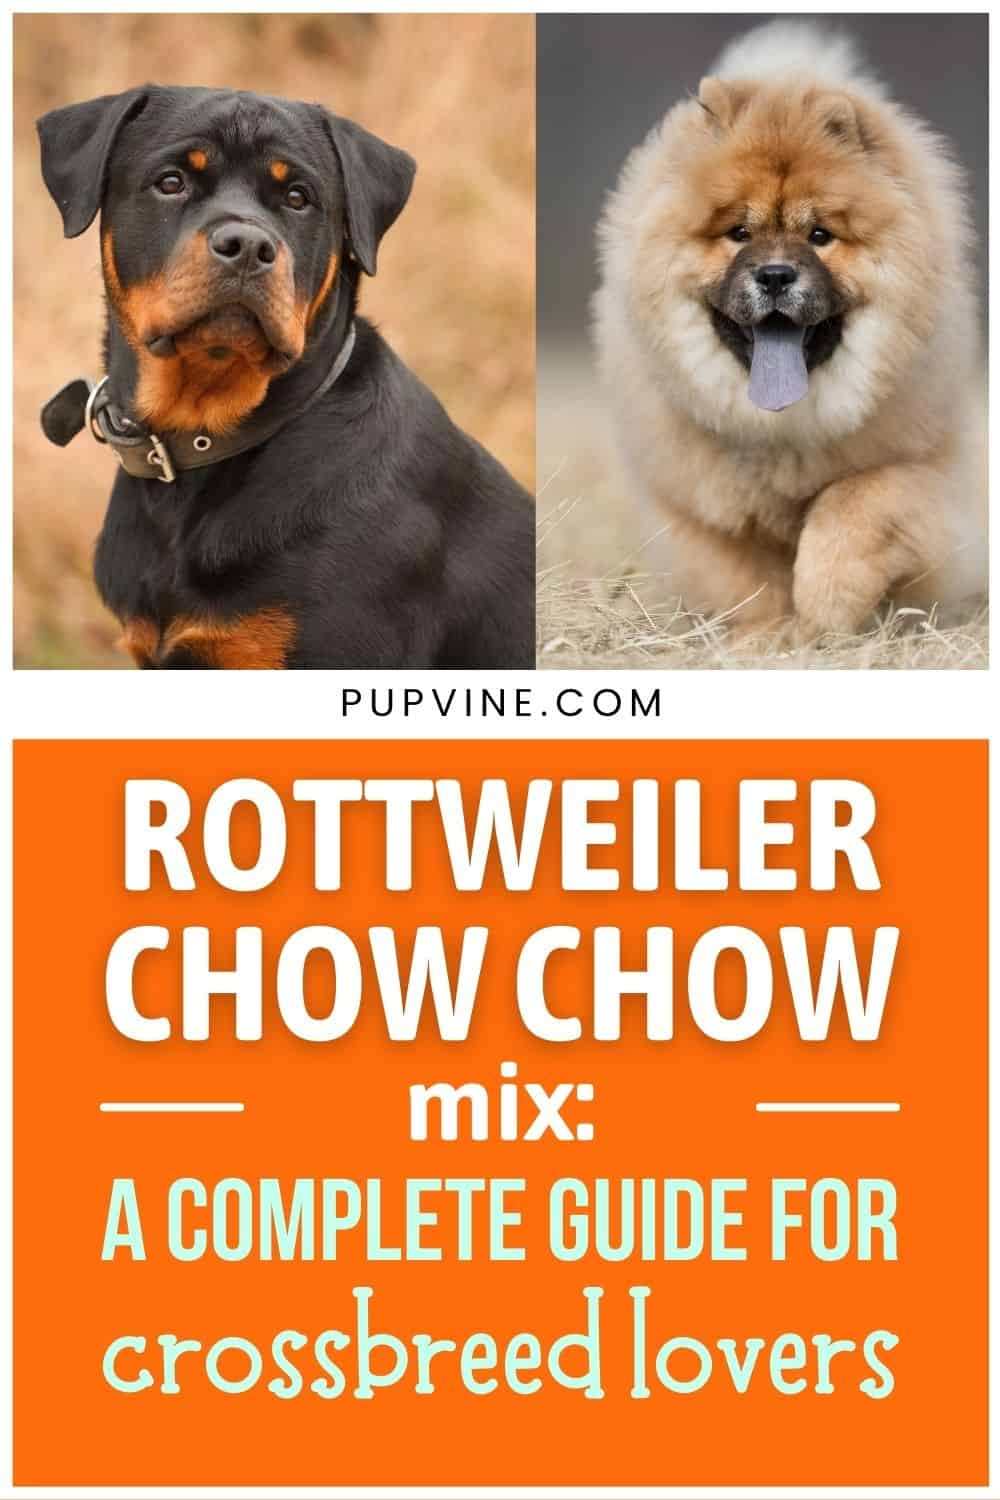 Rottweiler Chow Chow Mix A Complete Guide For Crossbreed Lovers